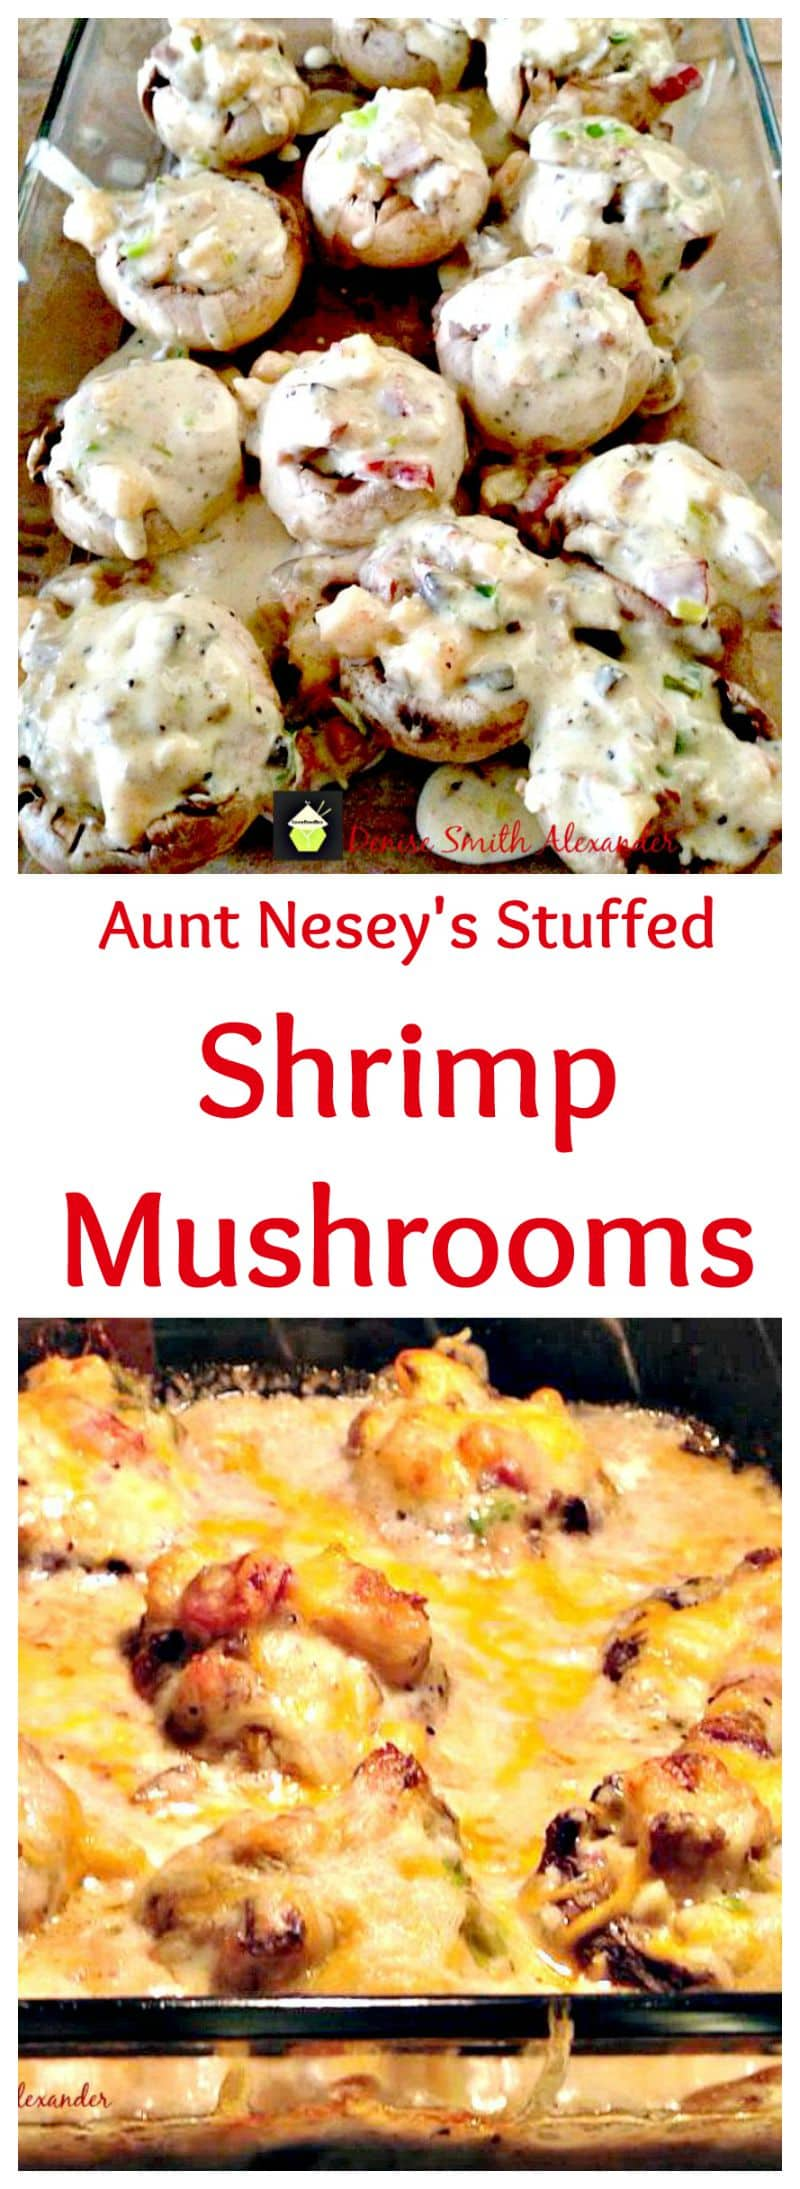 Aunt Nesey's Stuffed Shrimp Mushrooms, stuffed with shrimp and sausage in a creamy cheese sauce. Perfect as a starter or a main meal with a side salad and some nice bread!